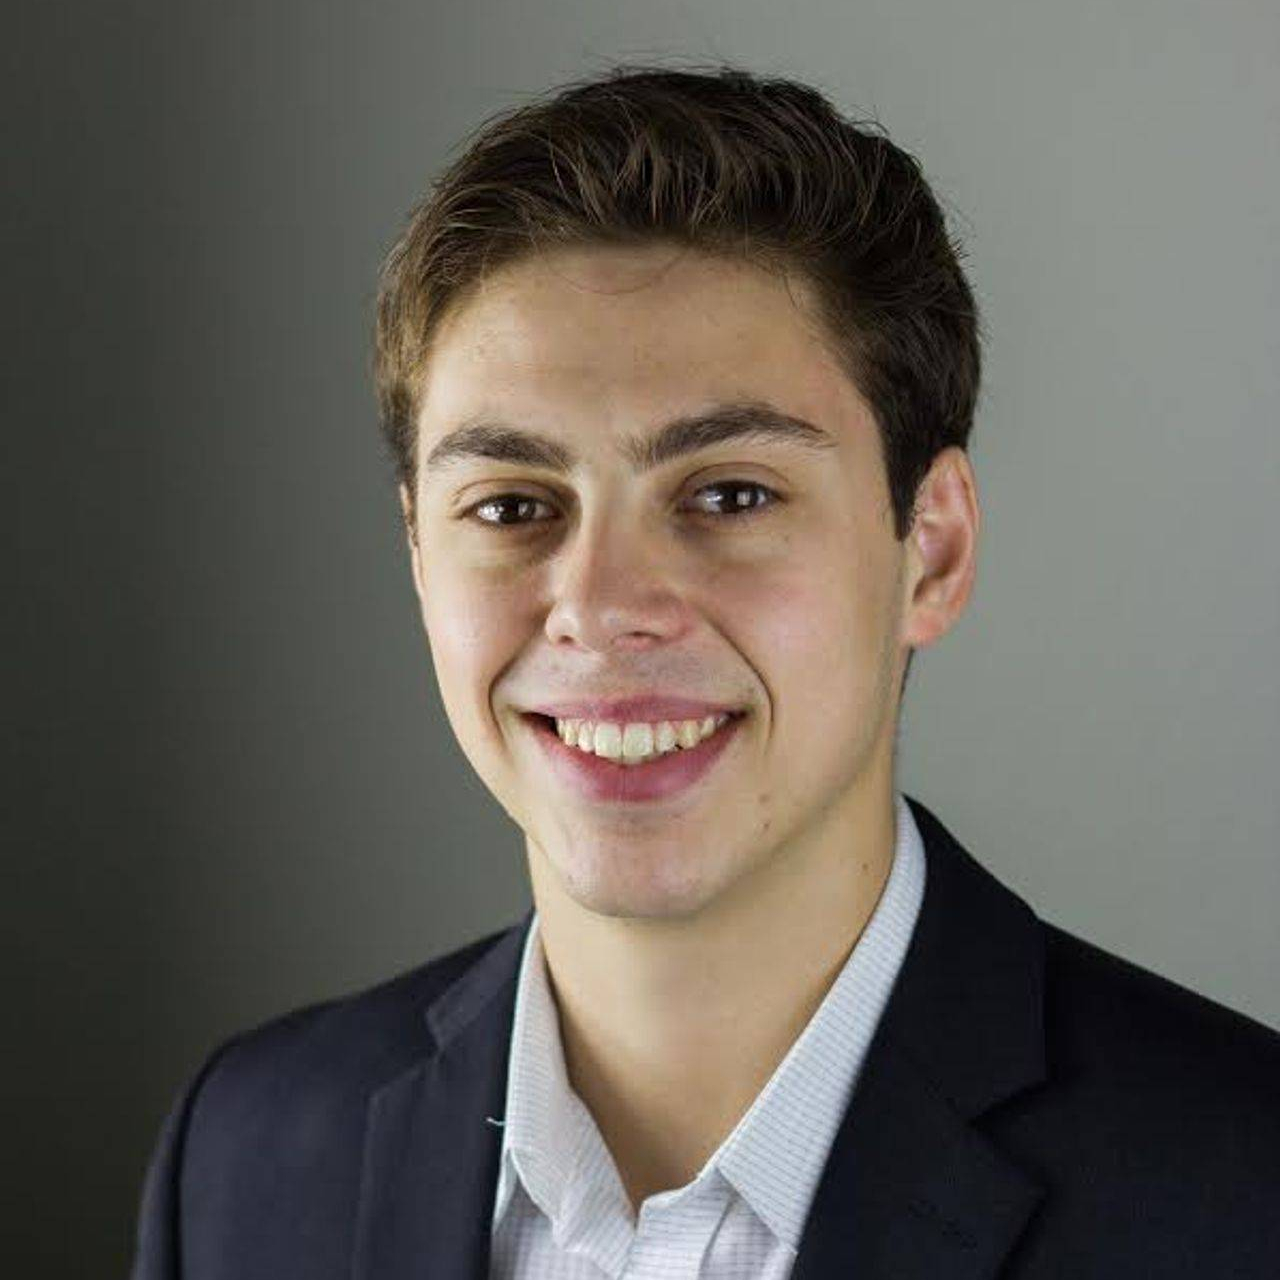 Seth Bertolucci - Class of 2019 - Major: Political EconomyOther Activities: International Accountability Project, Alpha Epsilon Pi FraternityFun Fact: I buy fortune cookies in bulk and my dog's name is Giovanni.About Me: I love politics, mock trial, and that Netflix show Chef's Table. Go Bears!Seth's Awards:2017 AAMTI - Berkeley, CA (UC Berkeley)Outstanding Witness (19/20 Ranks)